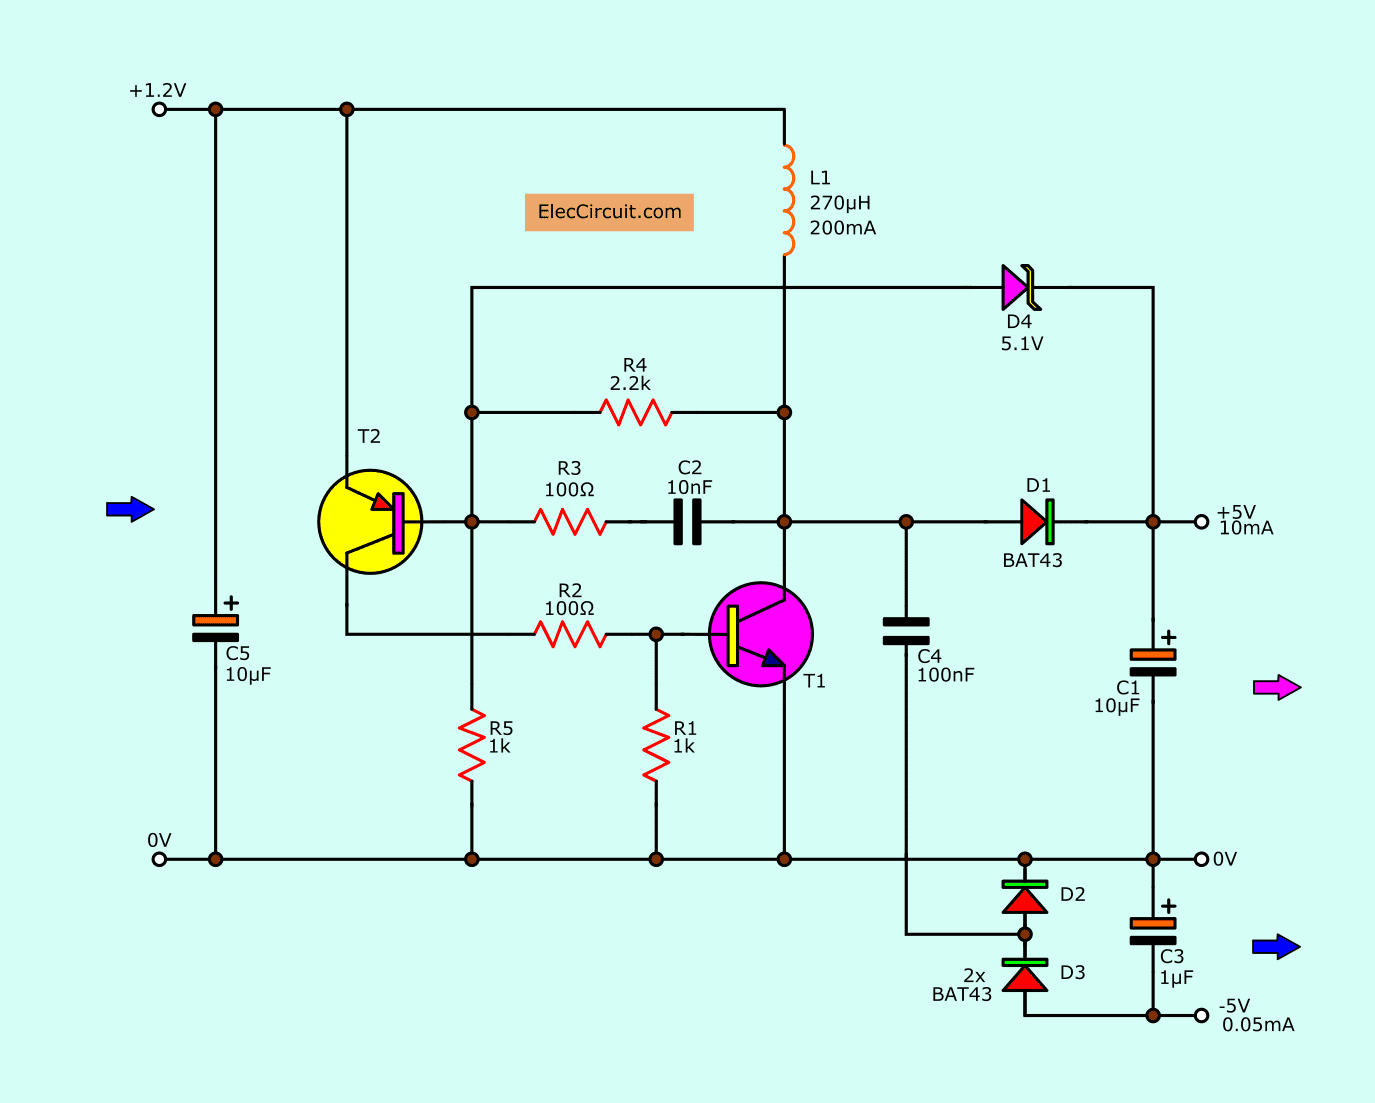 circuit dc to dc converter to step up input voltage